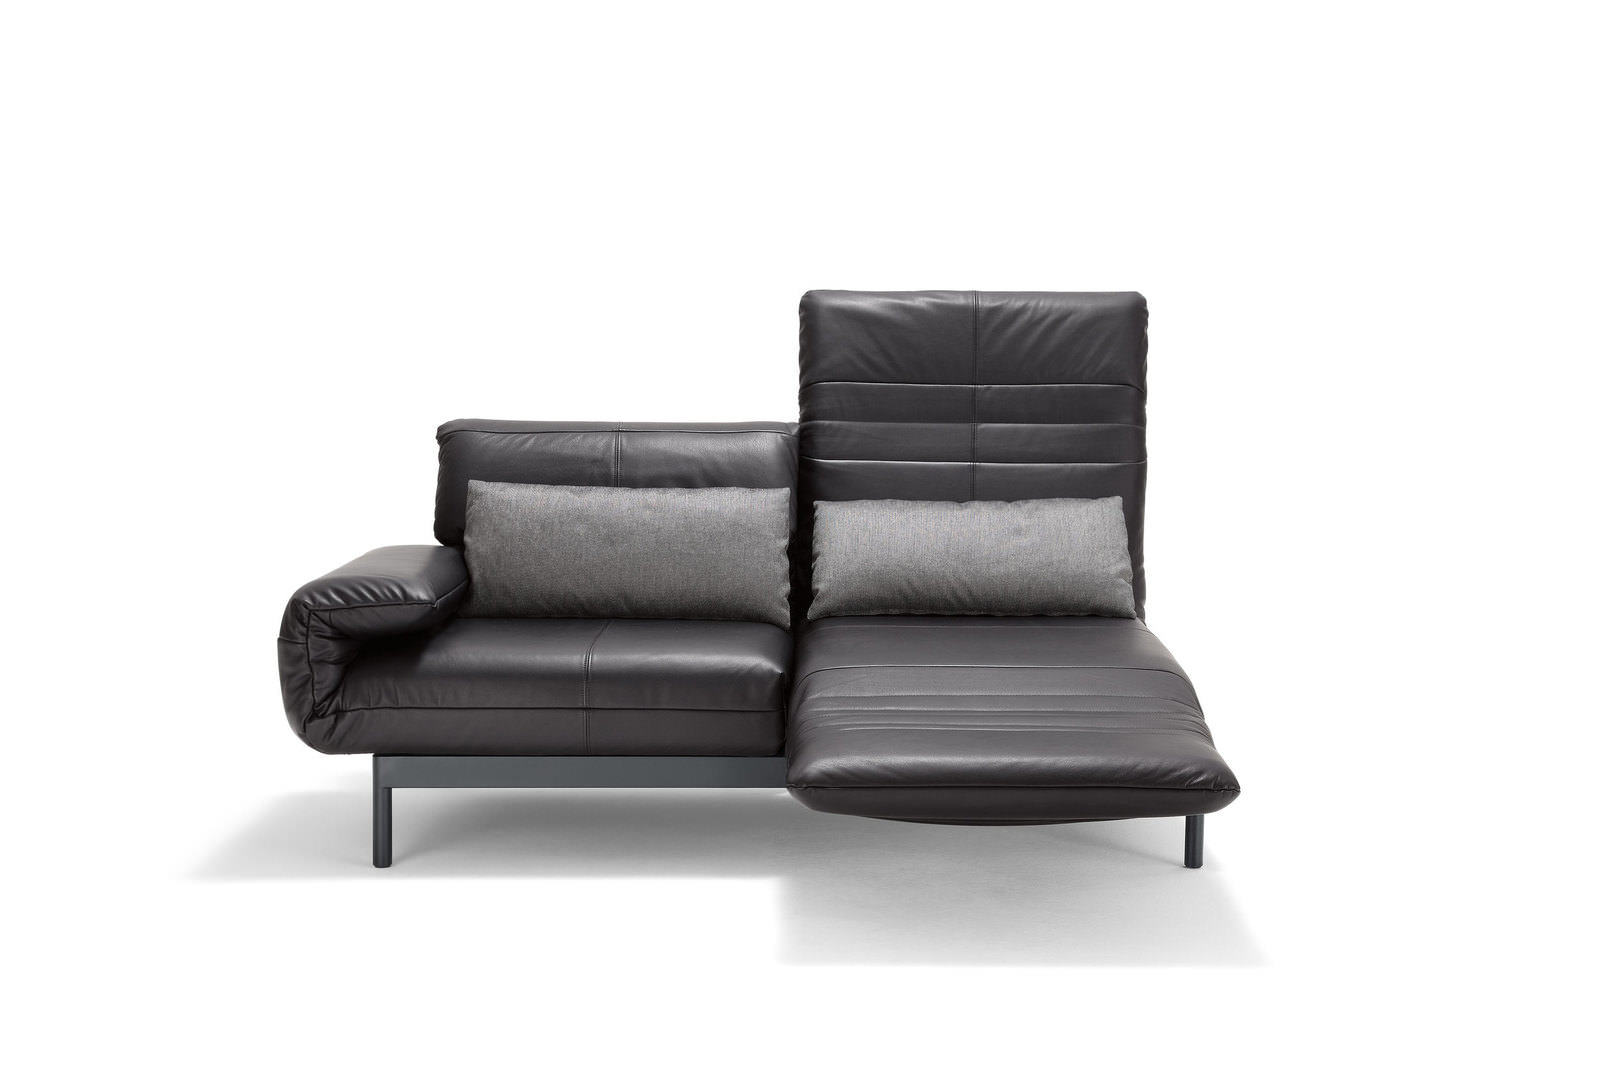 rolf benz sofabank online entdecken schaffrath ihr. Black Bedroom Furniture Sets. Home Design Ideas